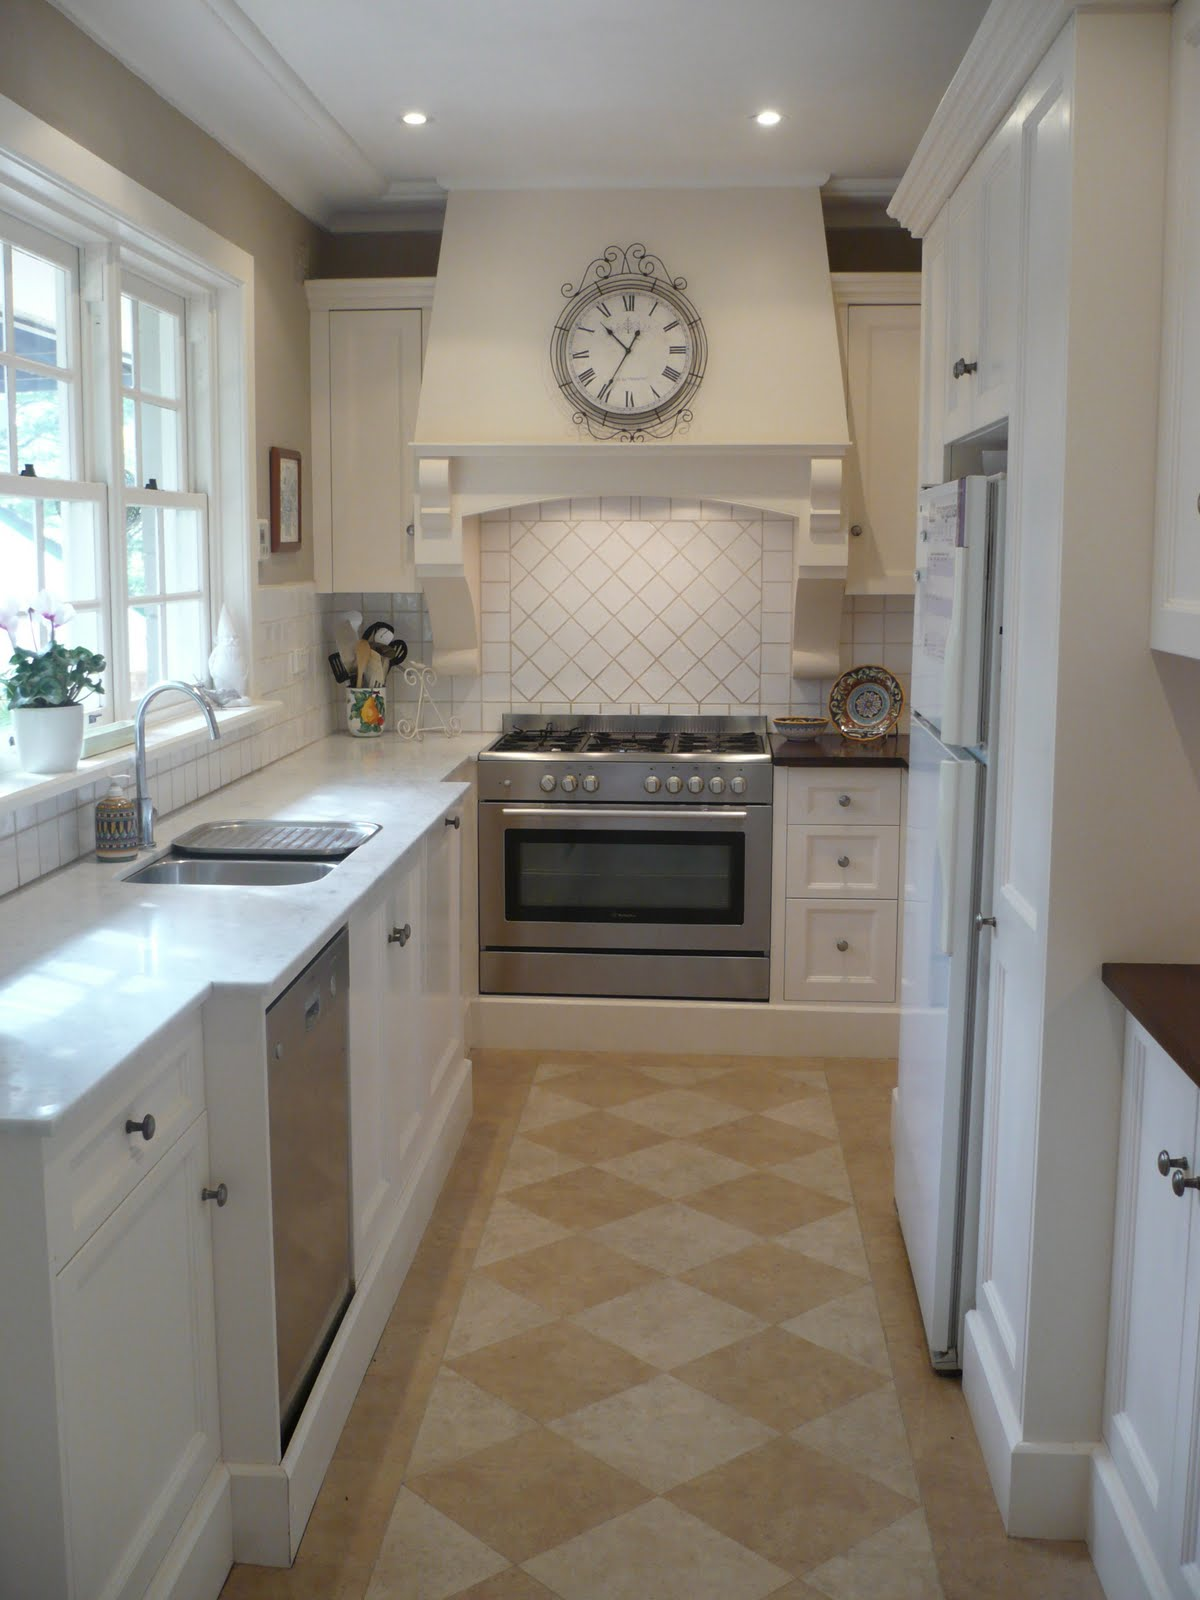 Small Galley Kitchen Remodel Ideas galley kitchen remodel. galley kitchen remodel kitchen traditional